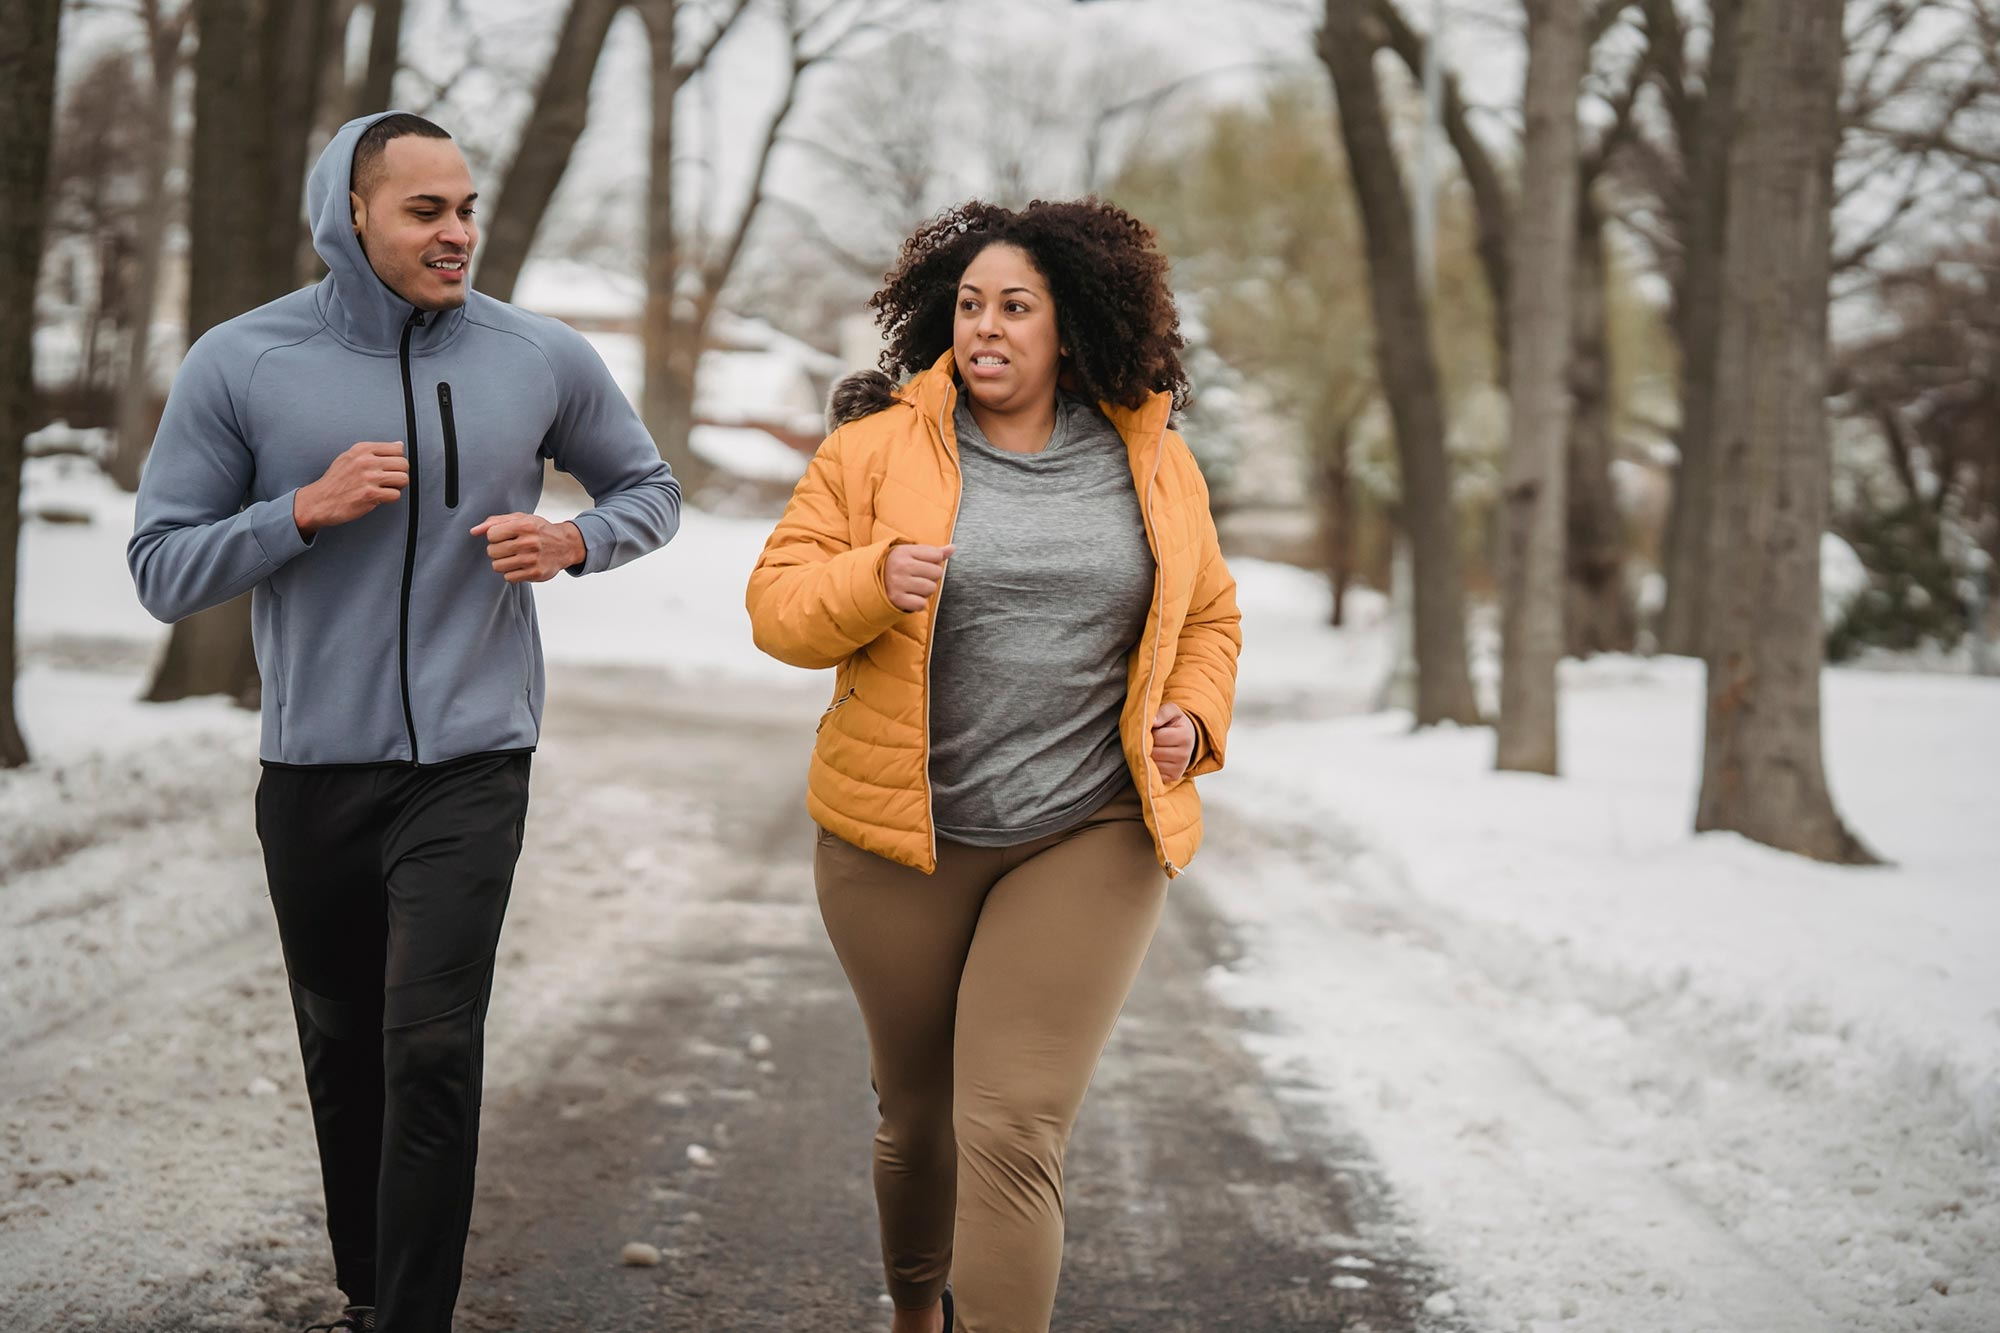 Scientists: We Should Focus on Fitness Over Weight Loss for Obesity-Related Health Conditions thumbnail